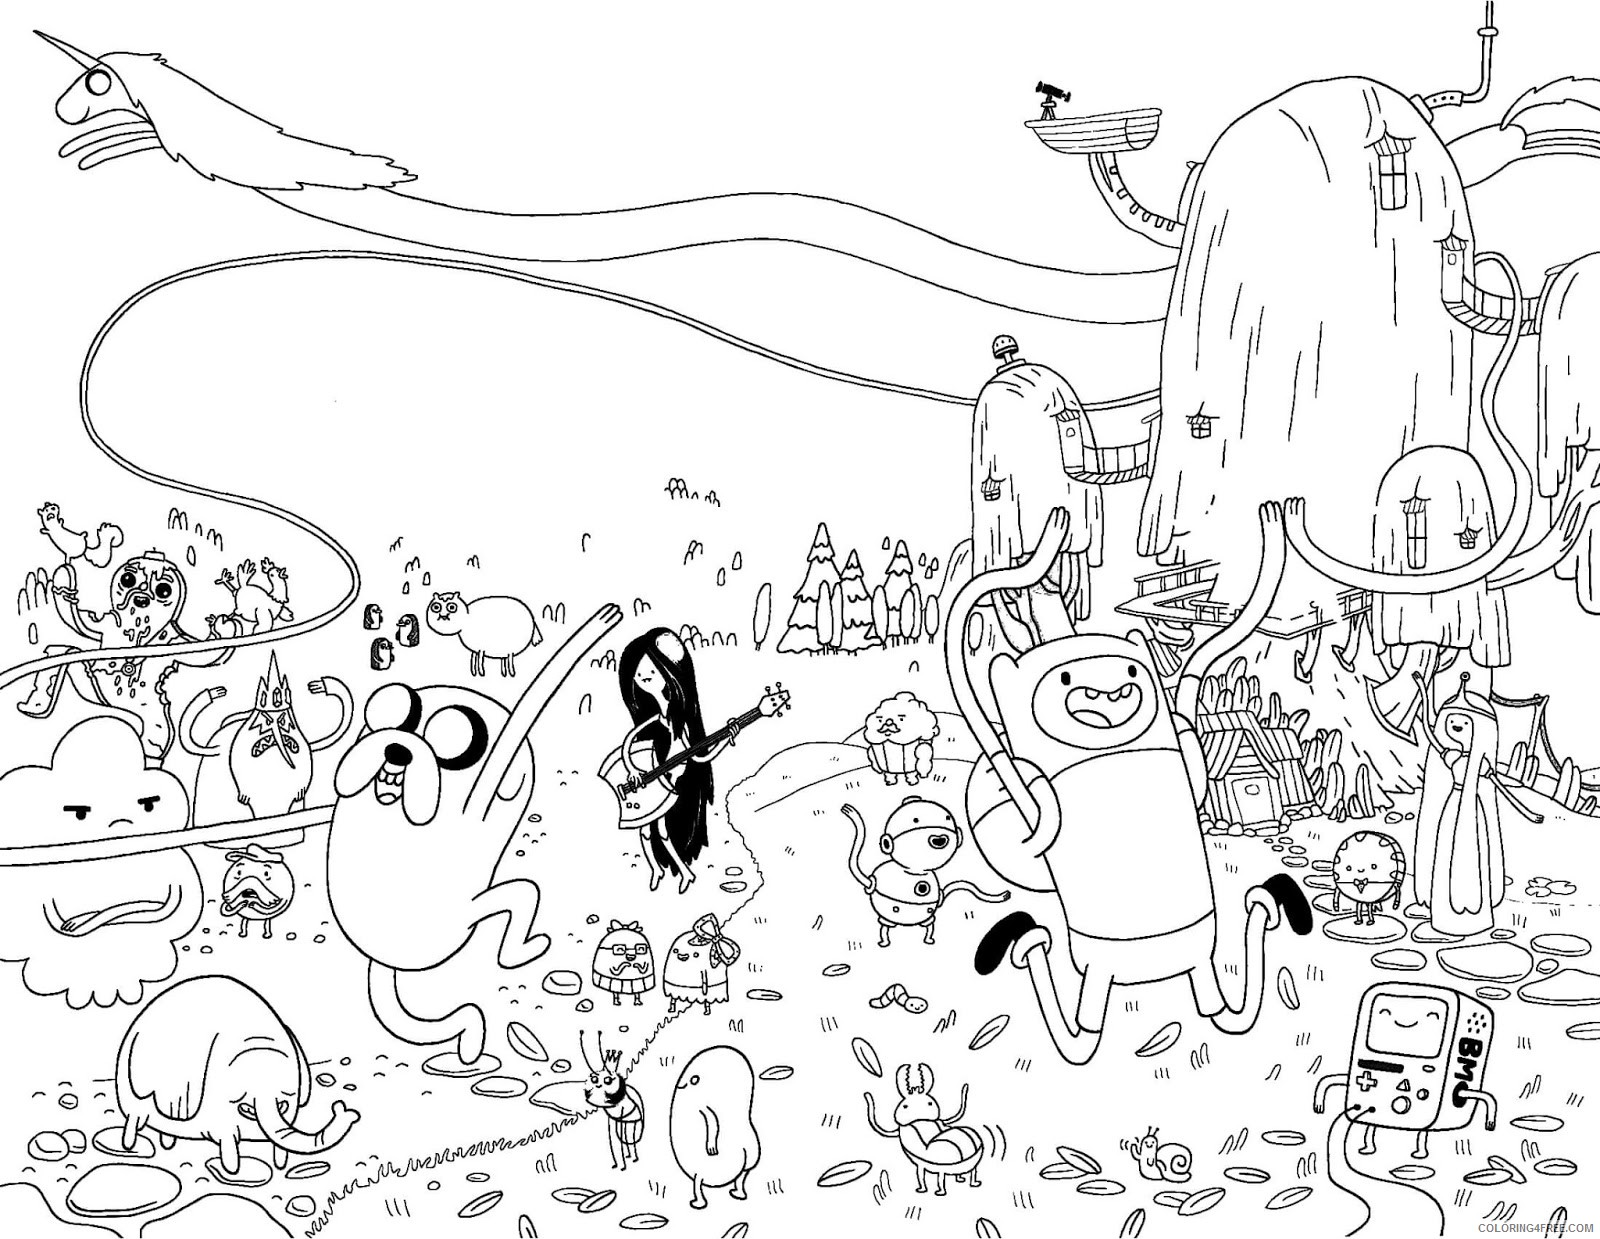 Printable Adventure Time Coloring Pages Coloring4free Coloring4free Com